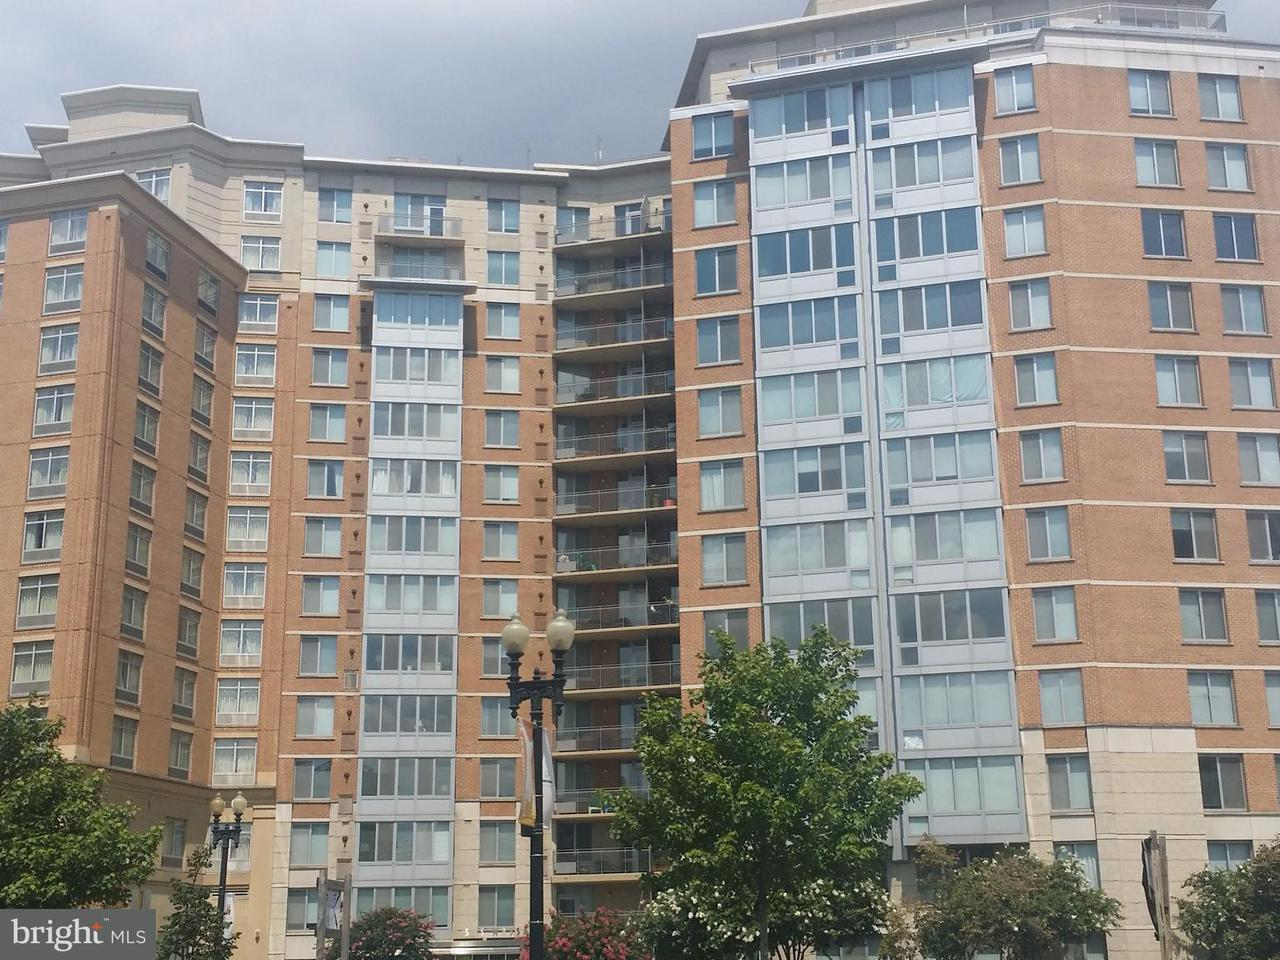 Townhouse for Sale at 555 MASSACHUSETTS AVE NW #507 555 MASSACHUSETTS AVE NW #507 Washington, District Of Columbia 20001 United States